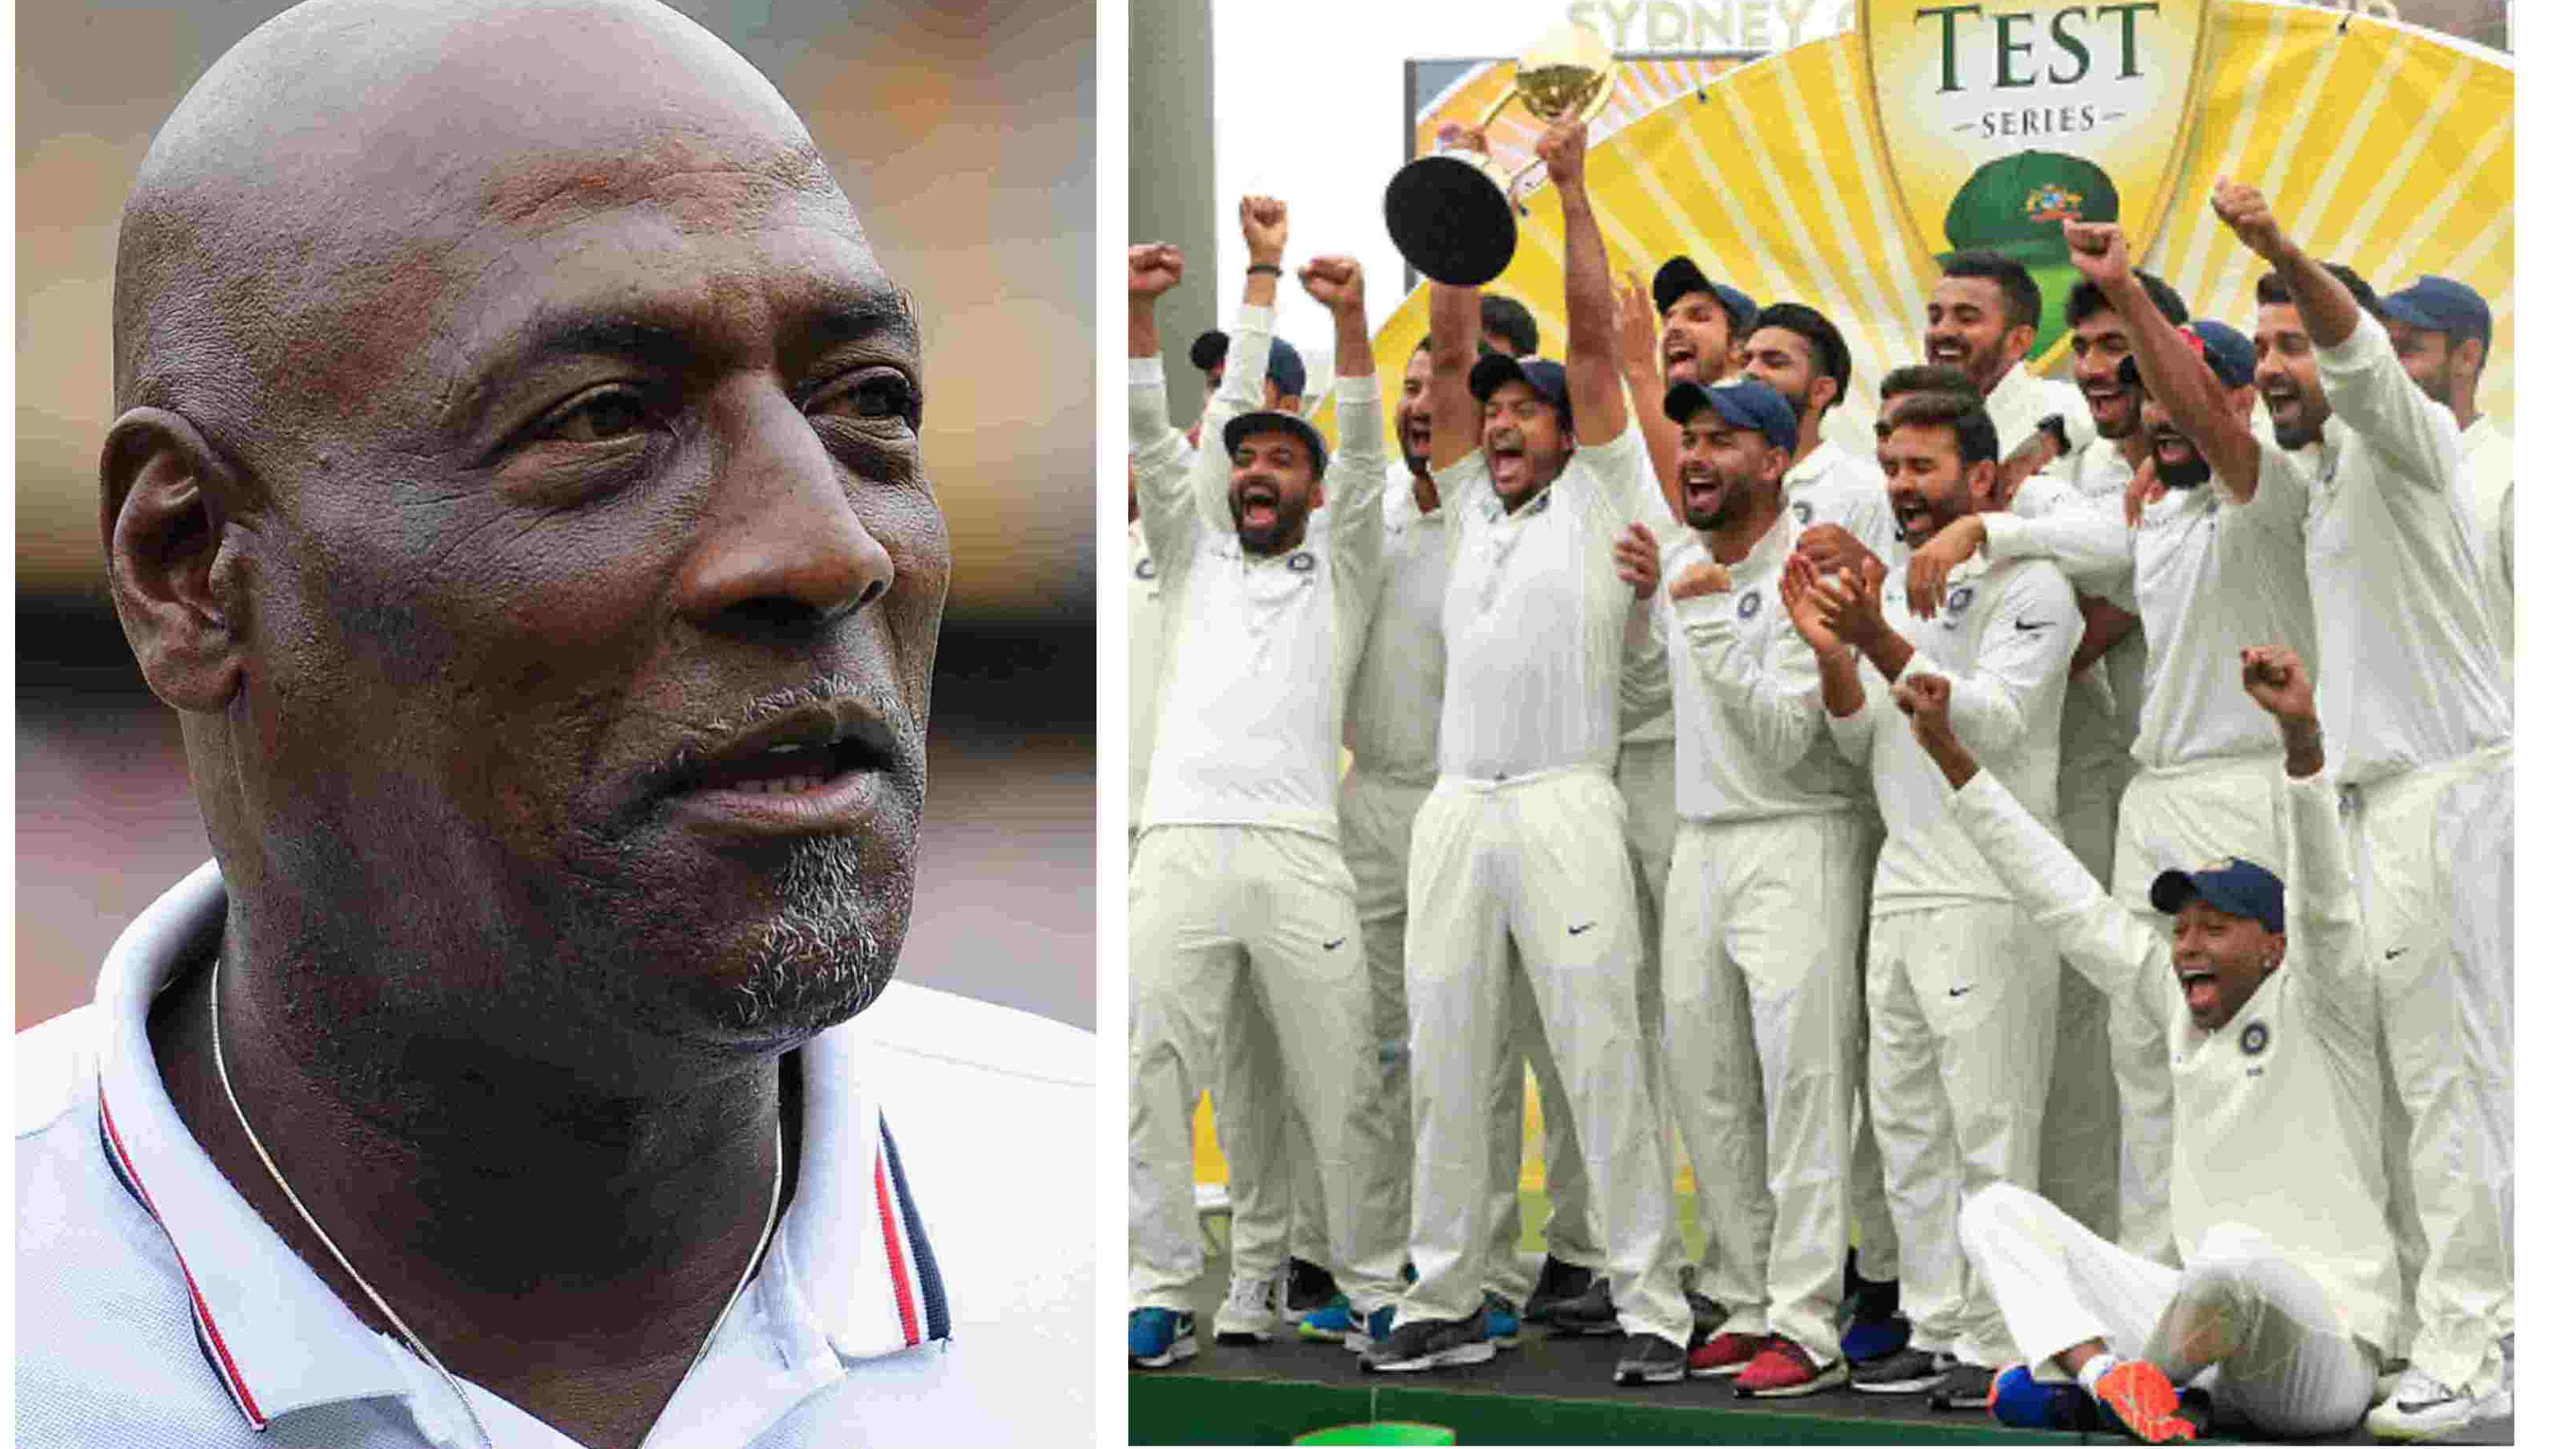 AUS v IND 2018-19: WATCH – Sir Vivian Richards congratulates Team India on a historic Test series victory in Australia